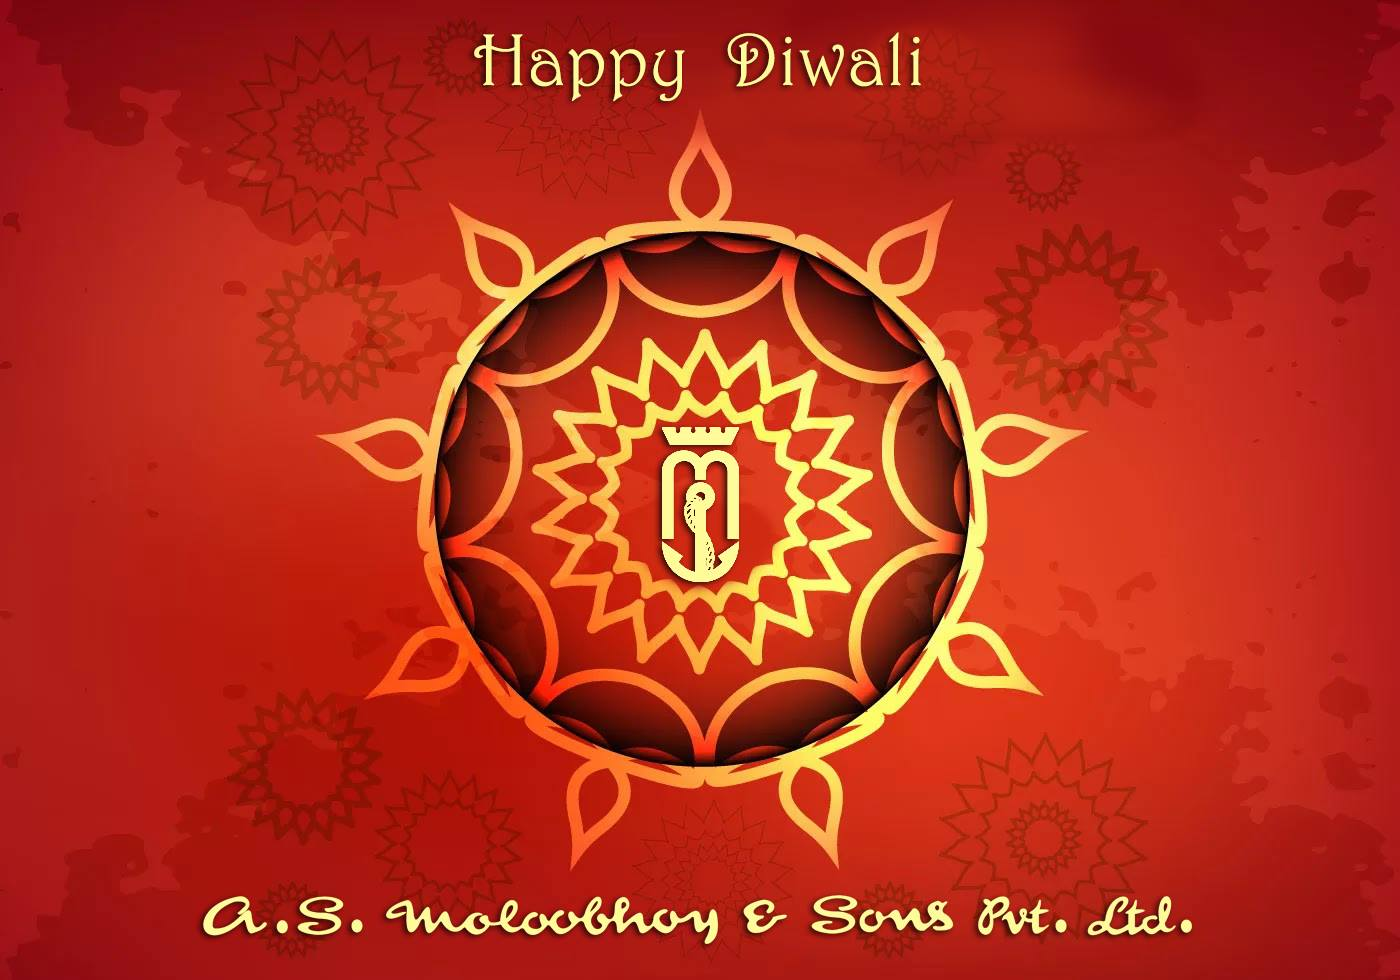 Happy Diwali from all of us @ Moloobhoys